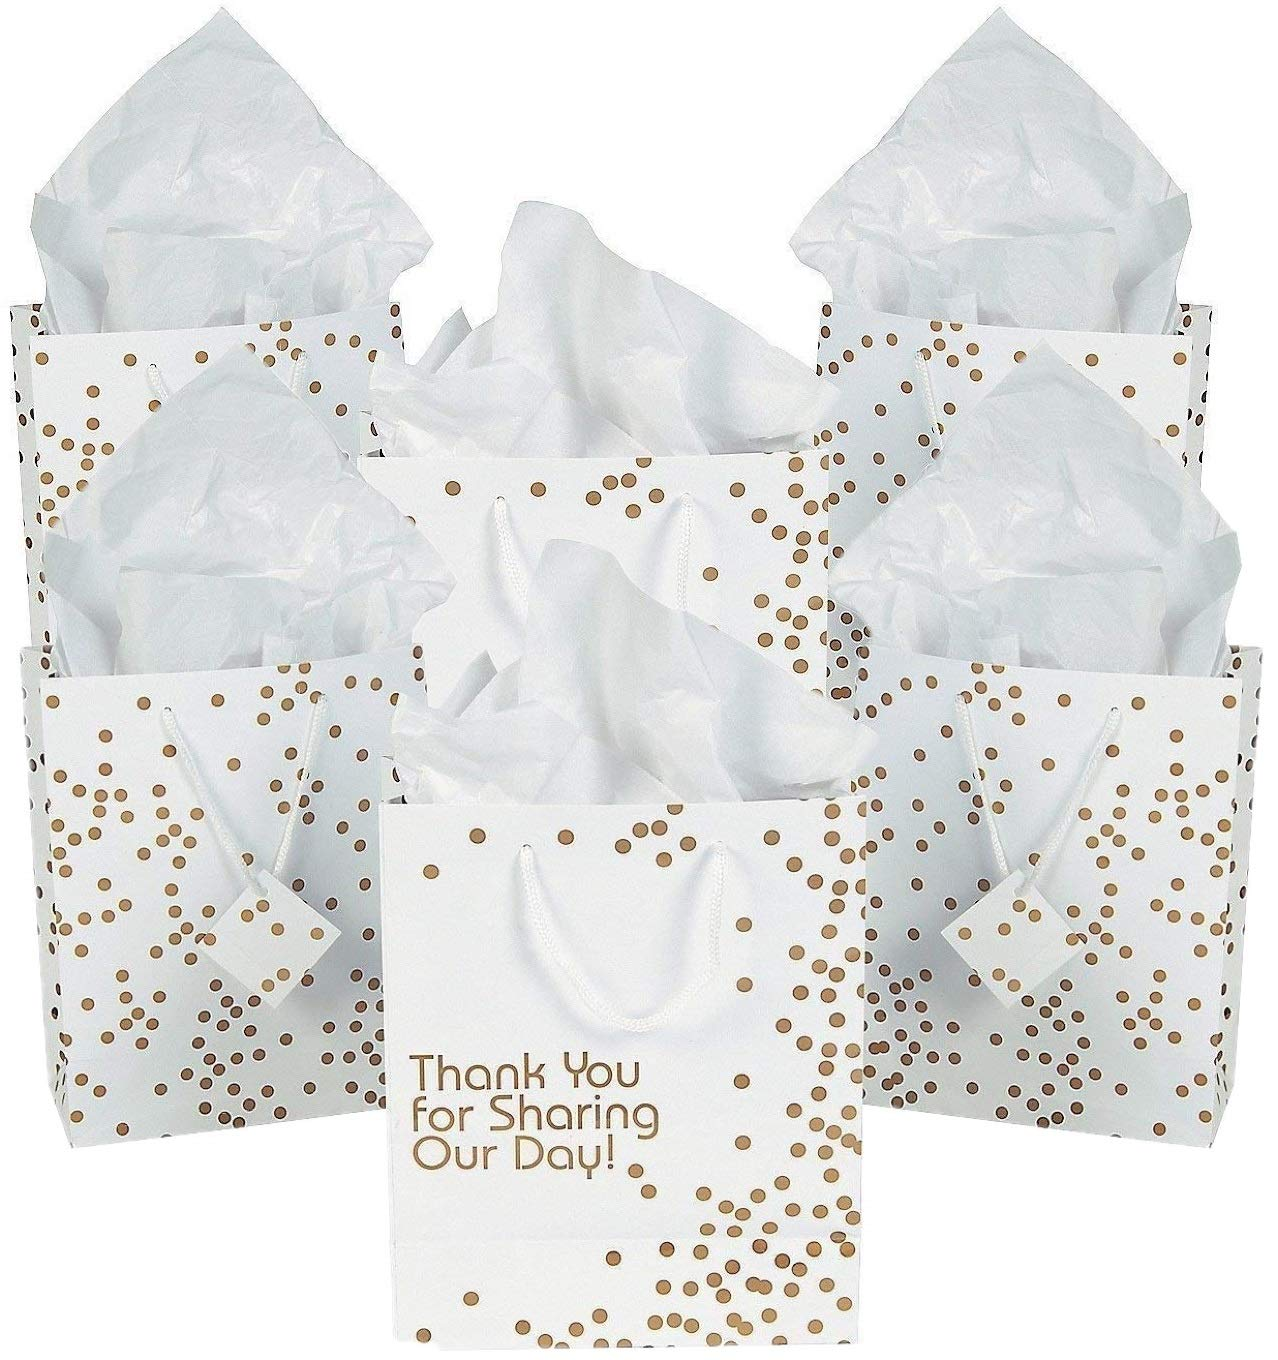 Fun Express Thank You For Sharing Our Day Wedding Thank You Gift Bags - 24 Pieces